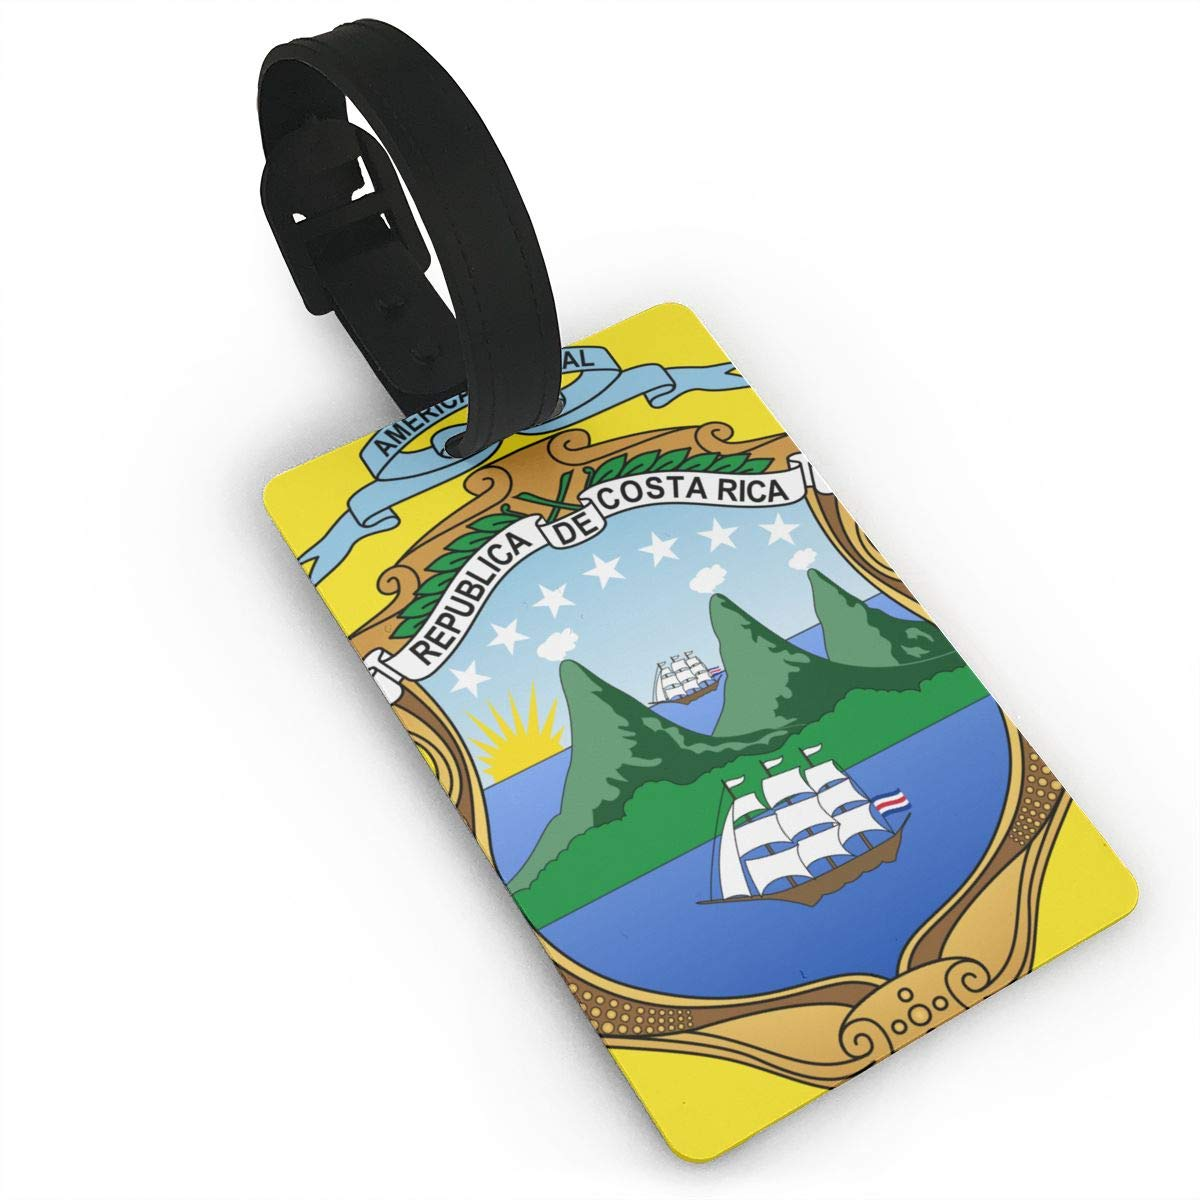 KODW12 Coat of Arms of Costa Rica Luggage Tag Travel Bag Labels Suitcase Bag Tag Name Address Cards